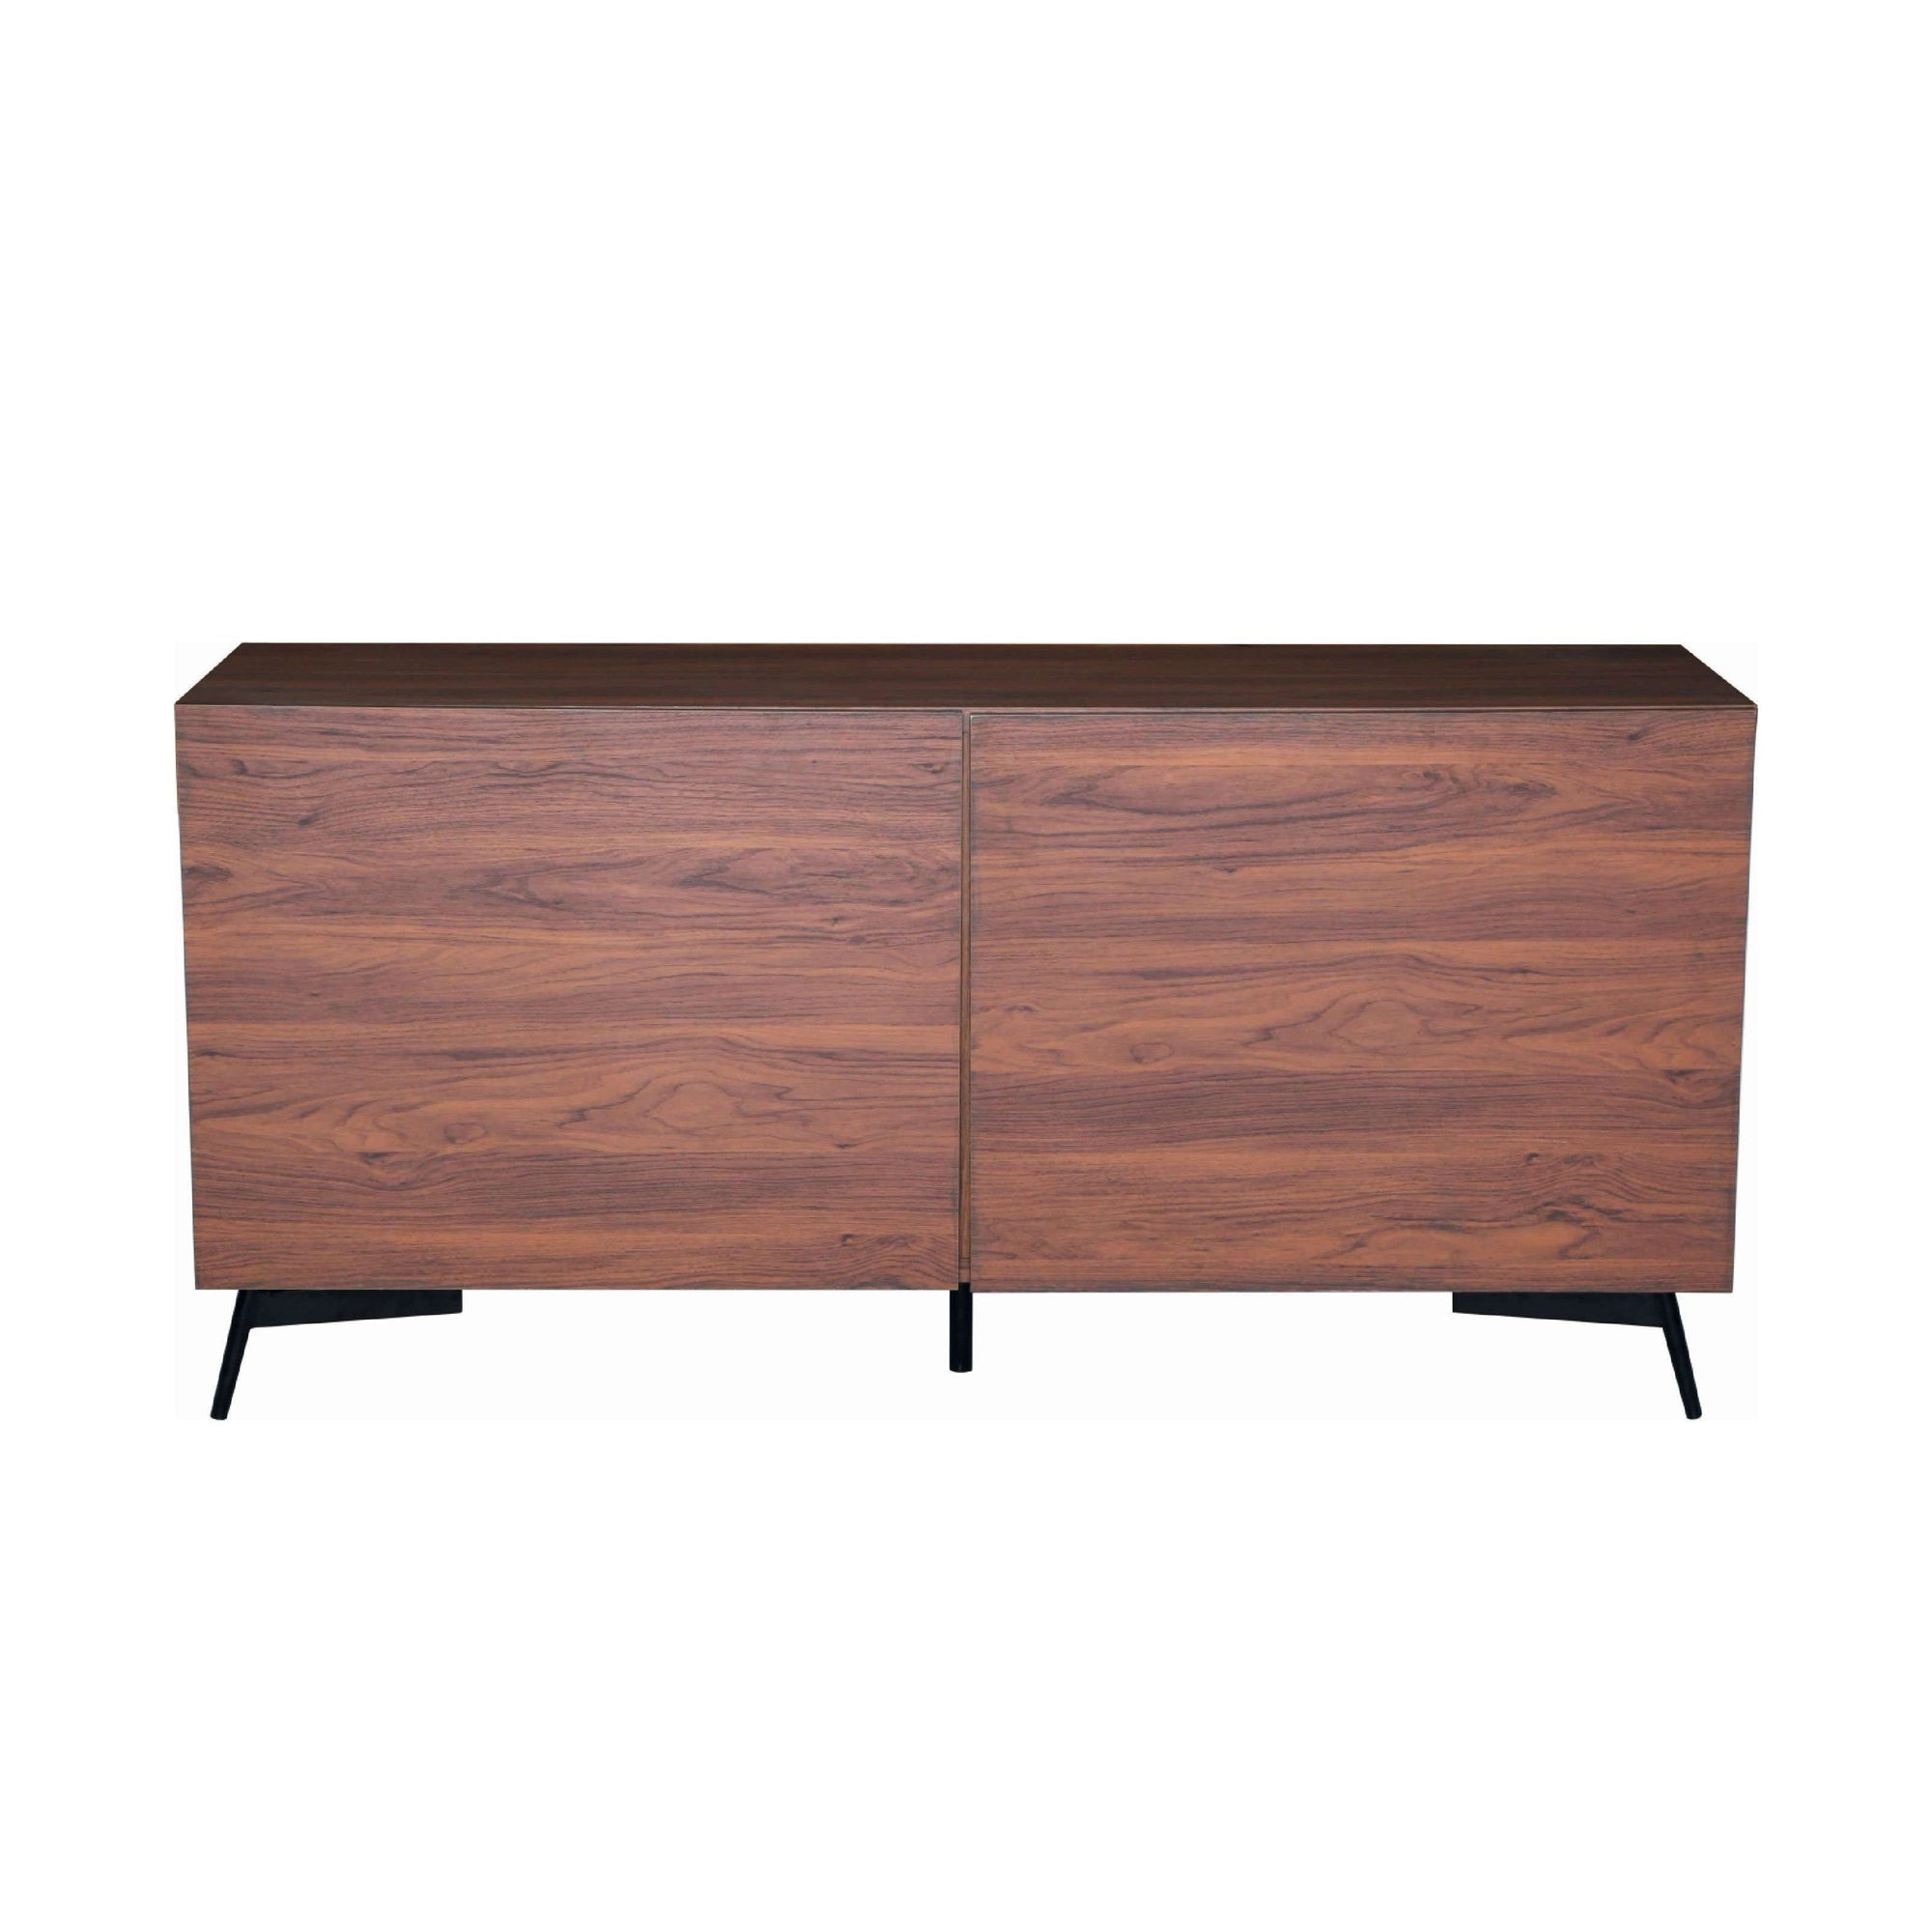 AKON Sideboard On Matt Black Epoxy Leg, Walnut Laminate Body